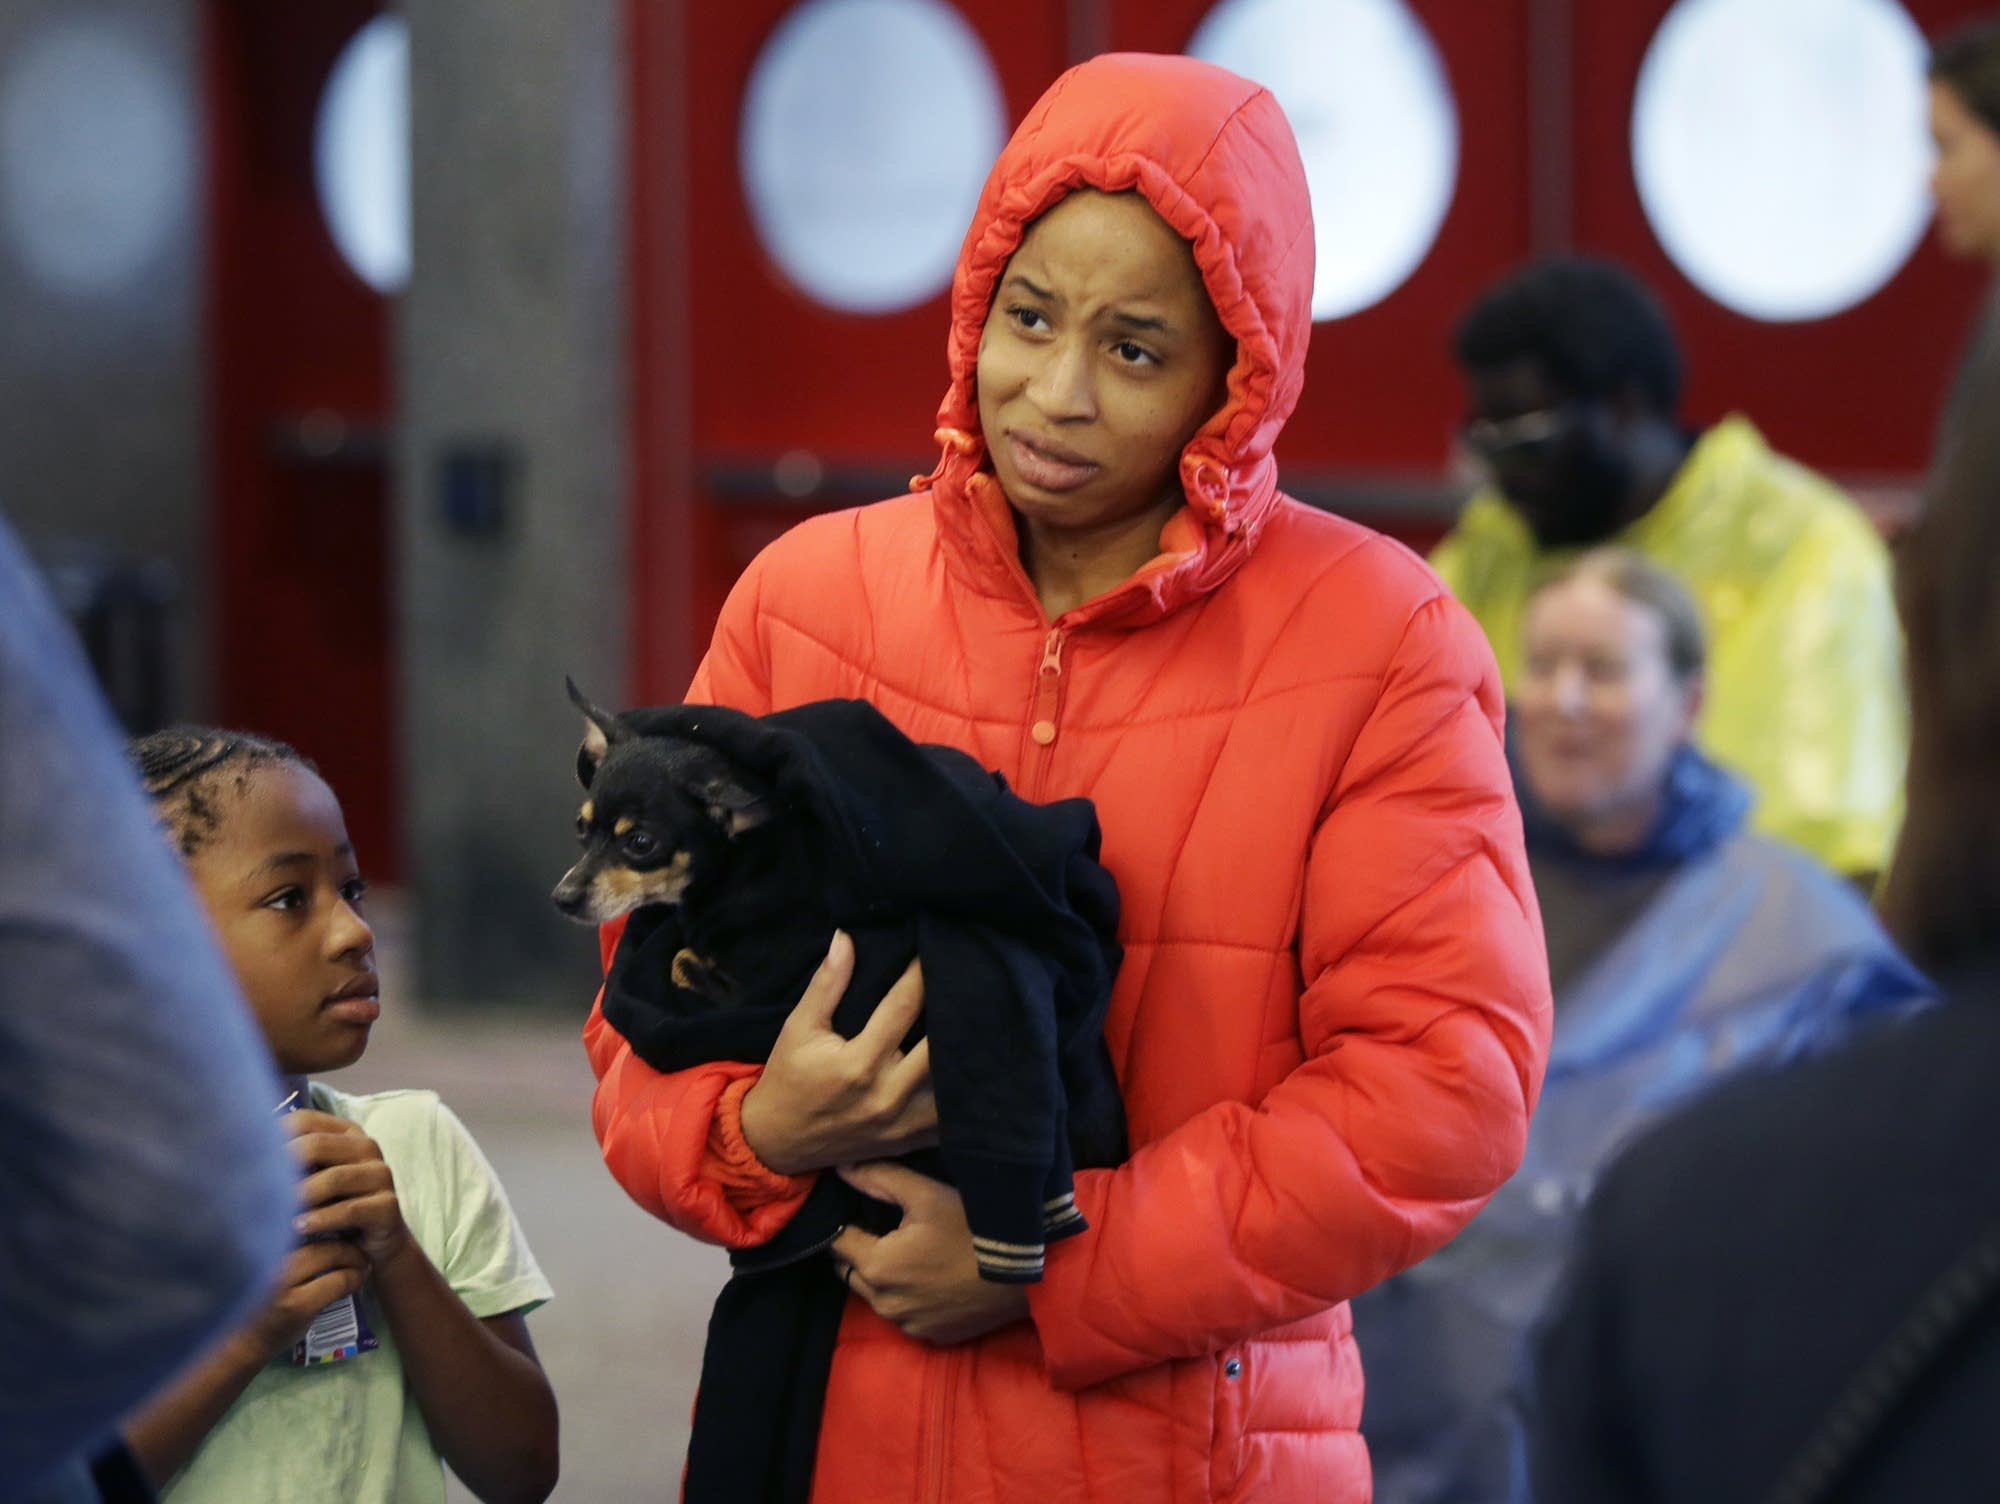 D'Ona Spears is told that she cannot bring her dog into the shelter